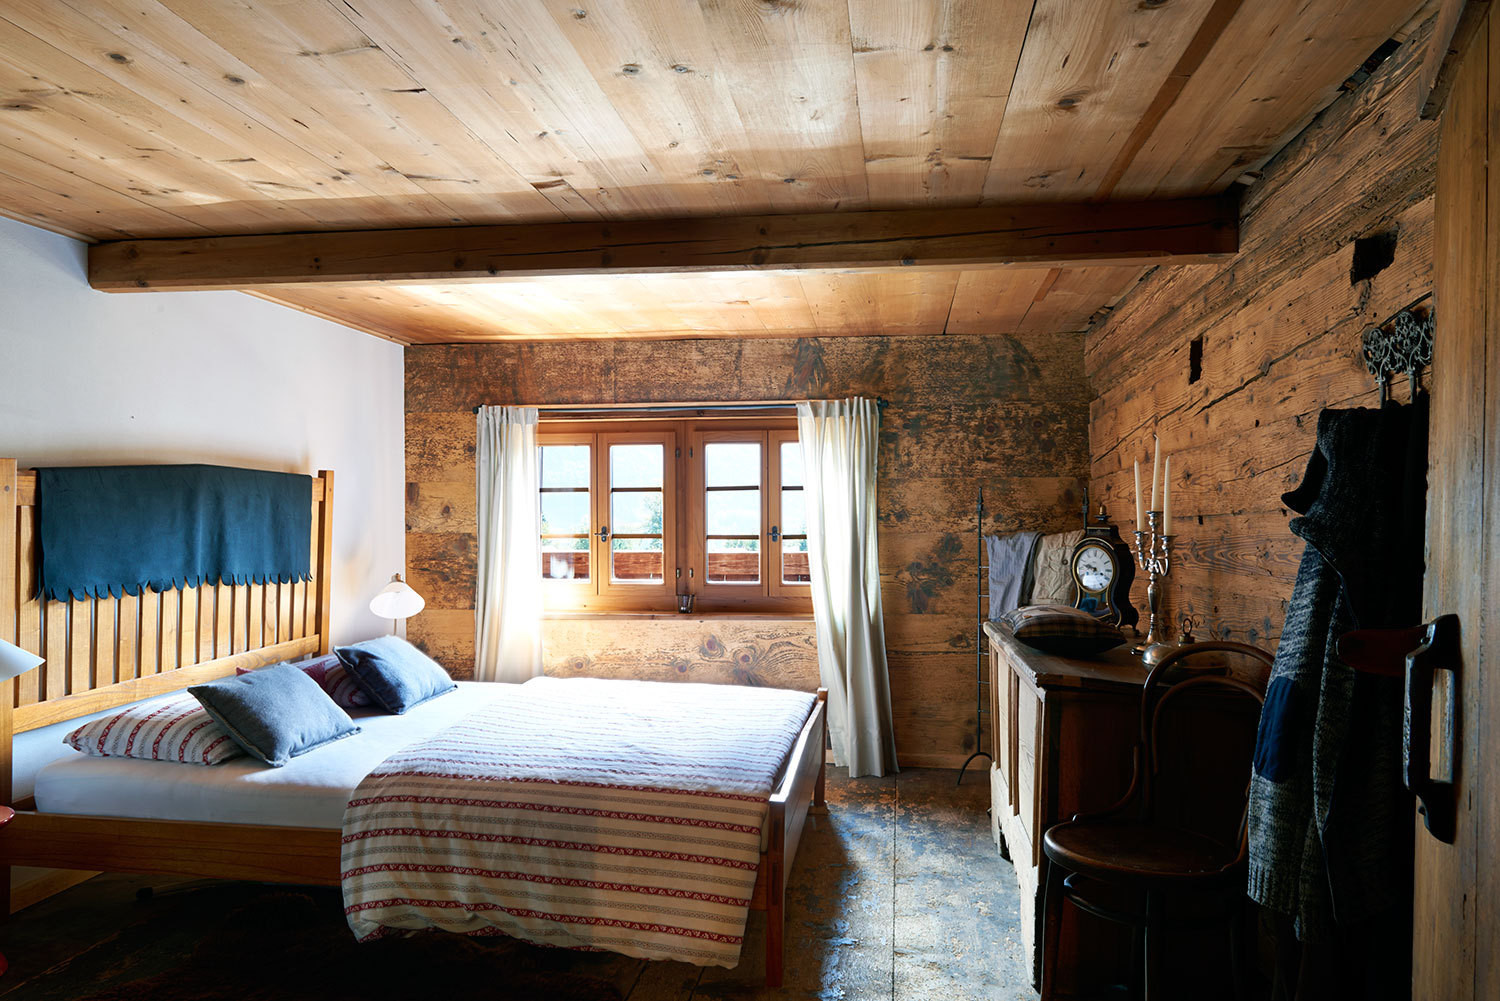 Wood-paneled walls, ceilings, and windows reinforce the mood of rustic comfort in the master bedroom.